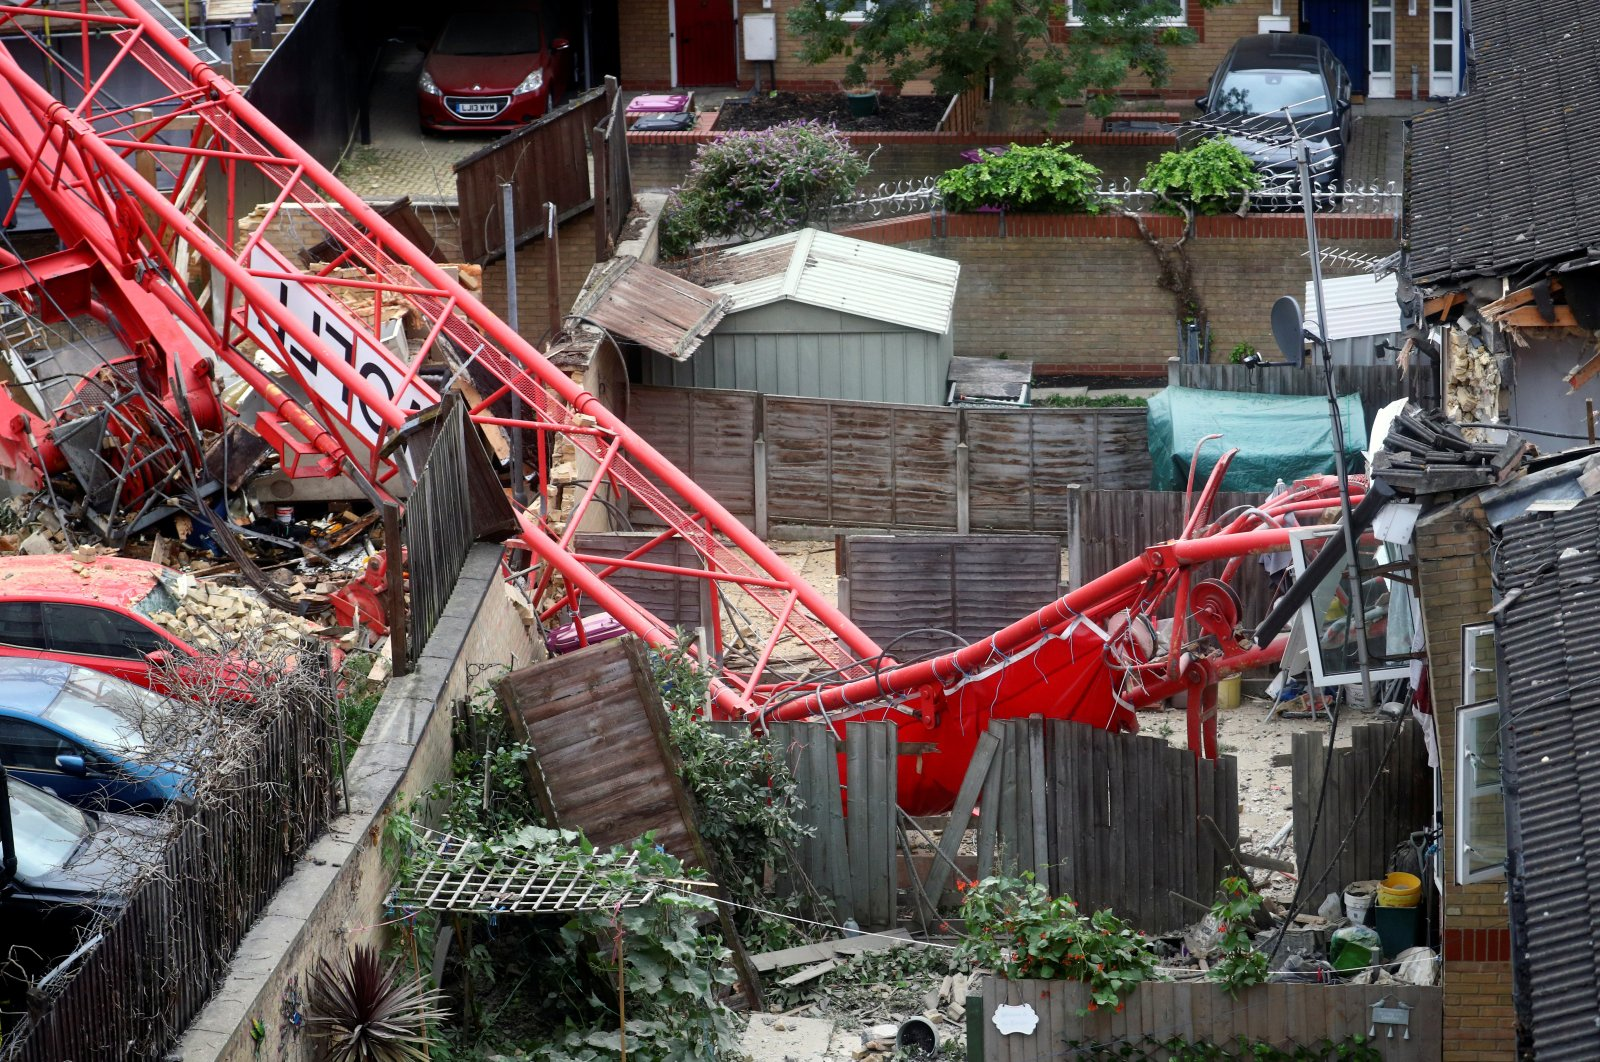 A collapsed crane is seen near a construction site in Bow, east London, Britain, July 8, 2020. (Reuters Photo)